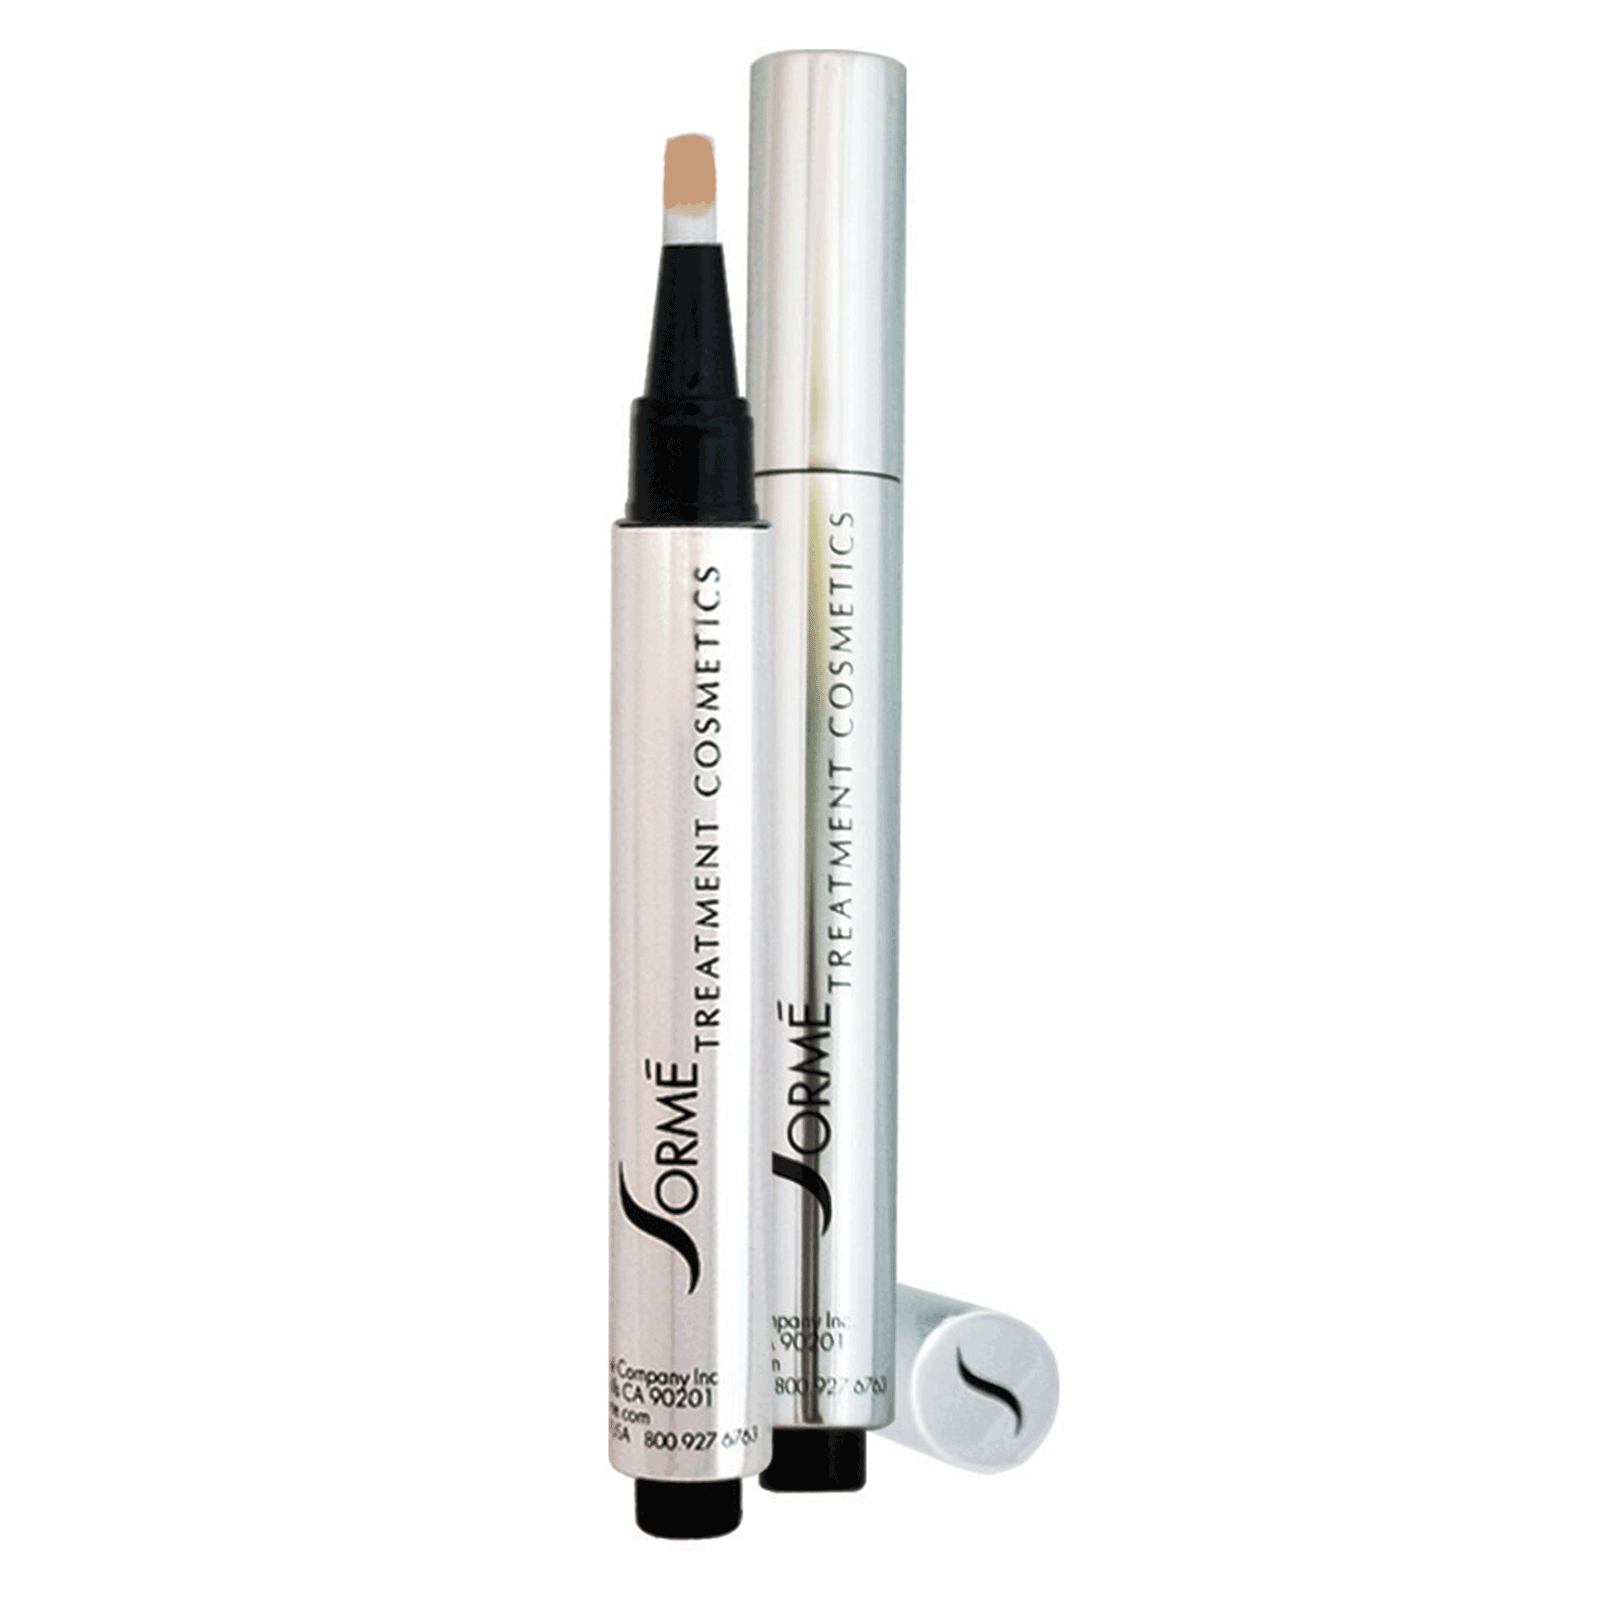 Perfect Touch Concealer Pen - True Sand